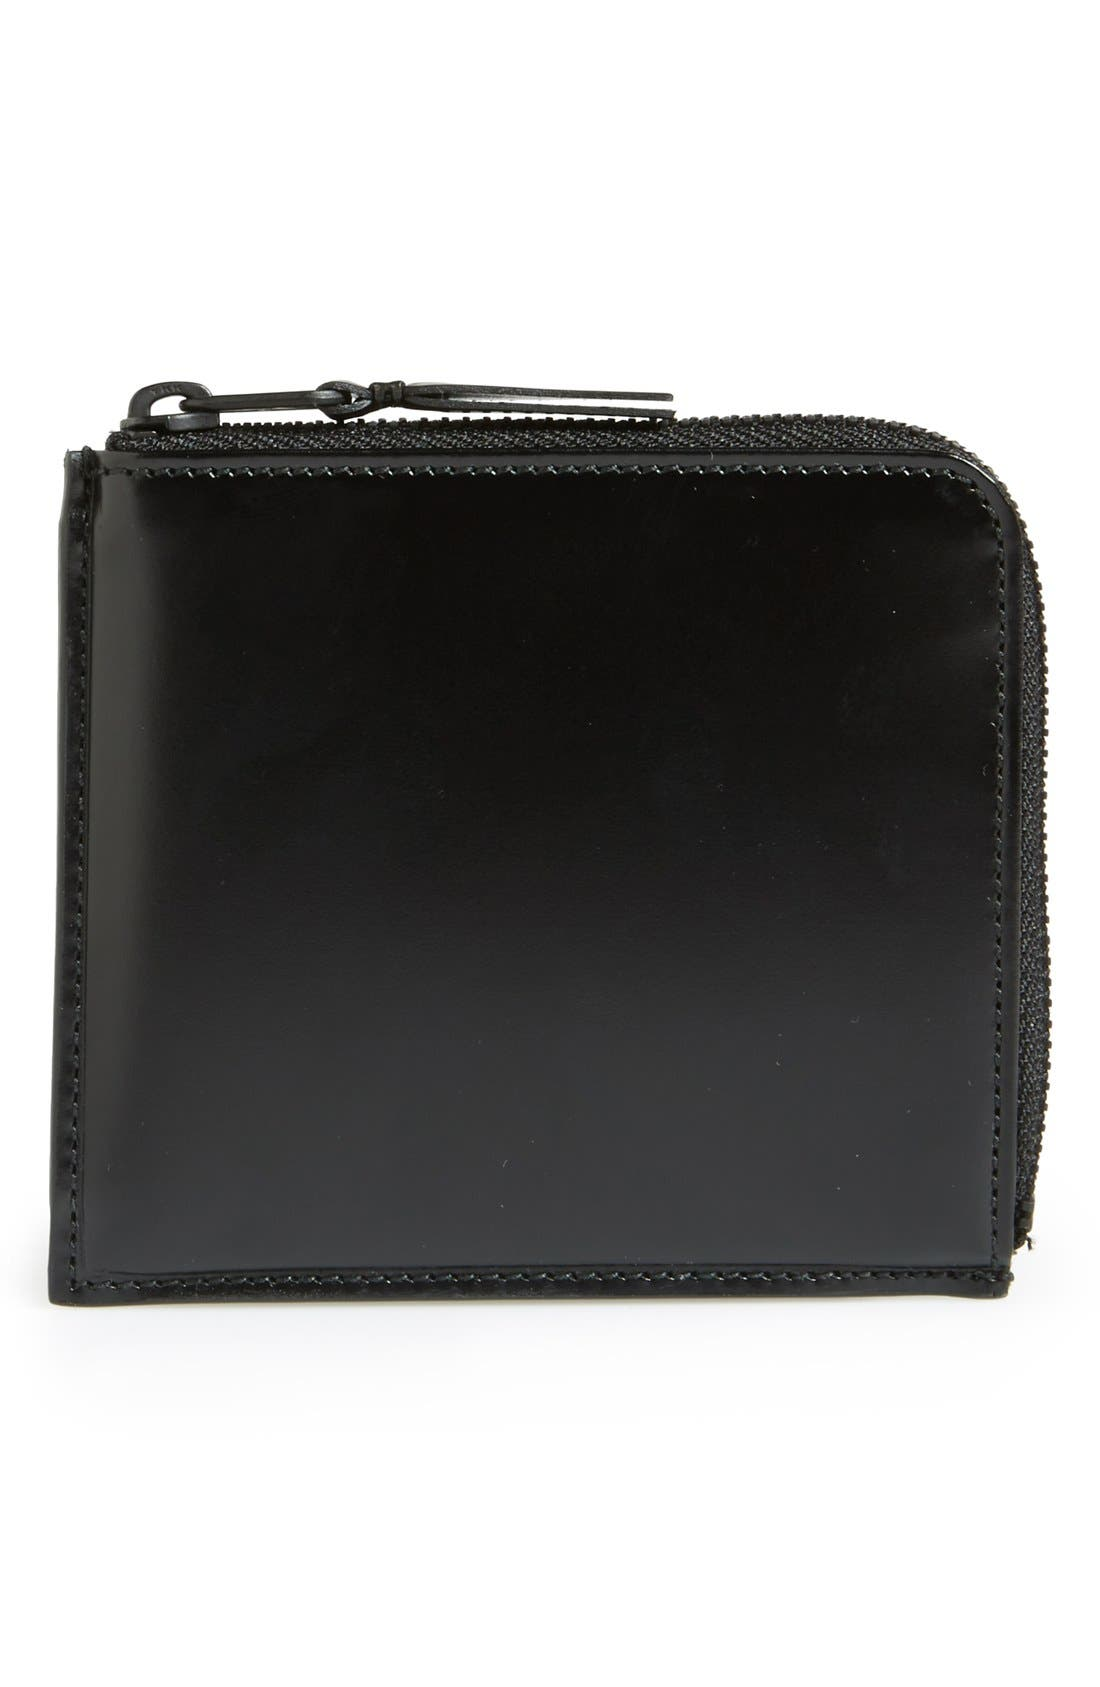 Alternate Image 1 Selected - Comme des Garçons Half Zip French Wallet